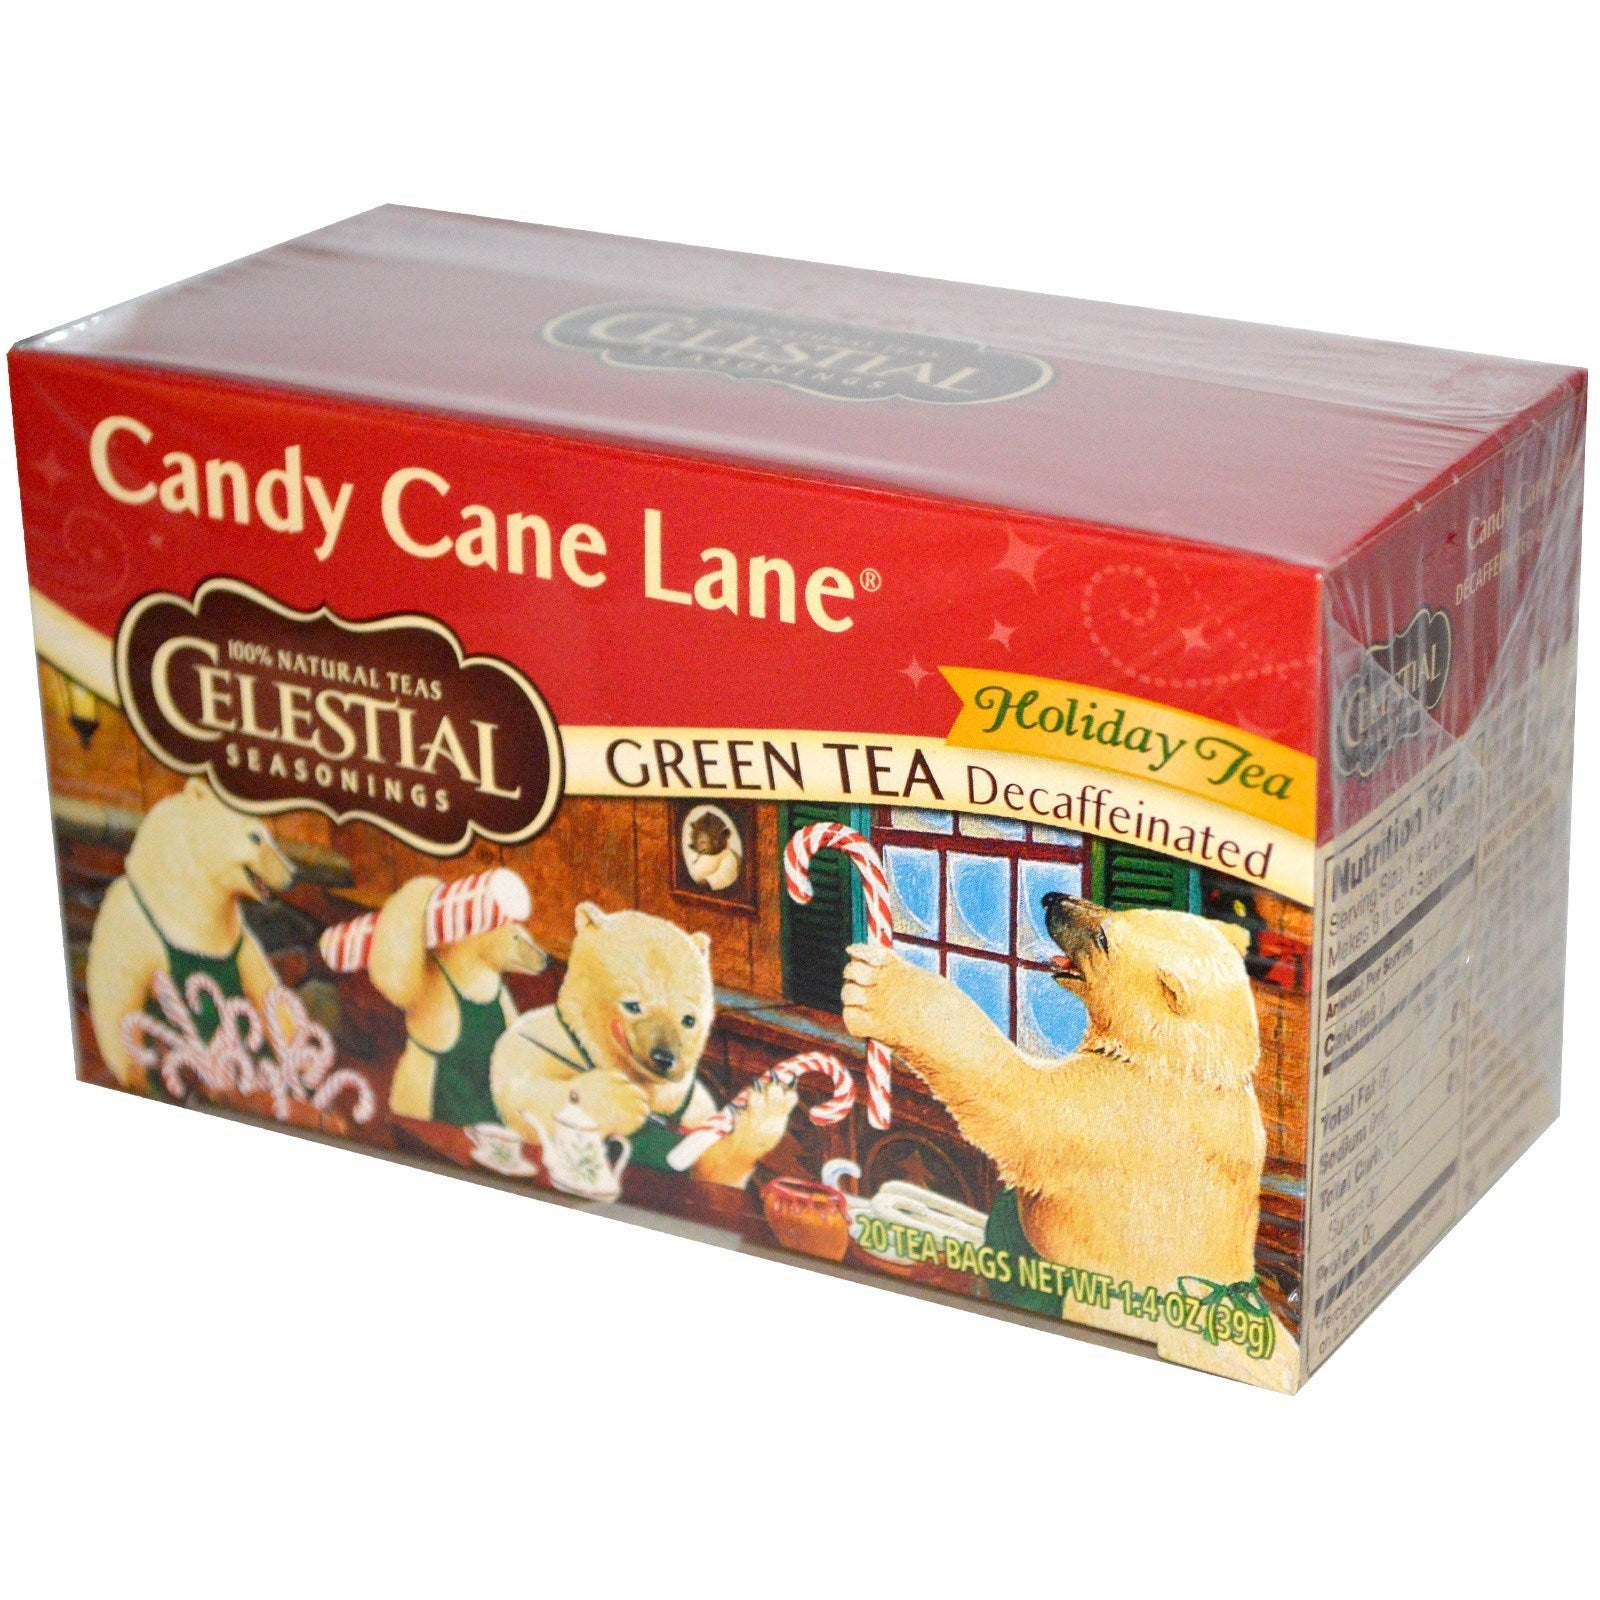 Celestial Seasonings Candy Cane Lane Decaf Green Holiday ...